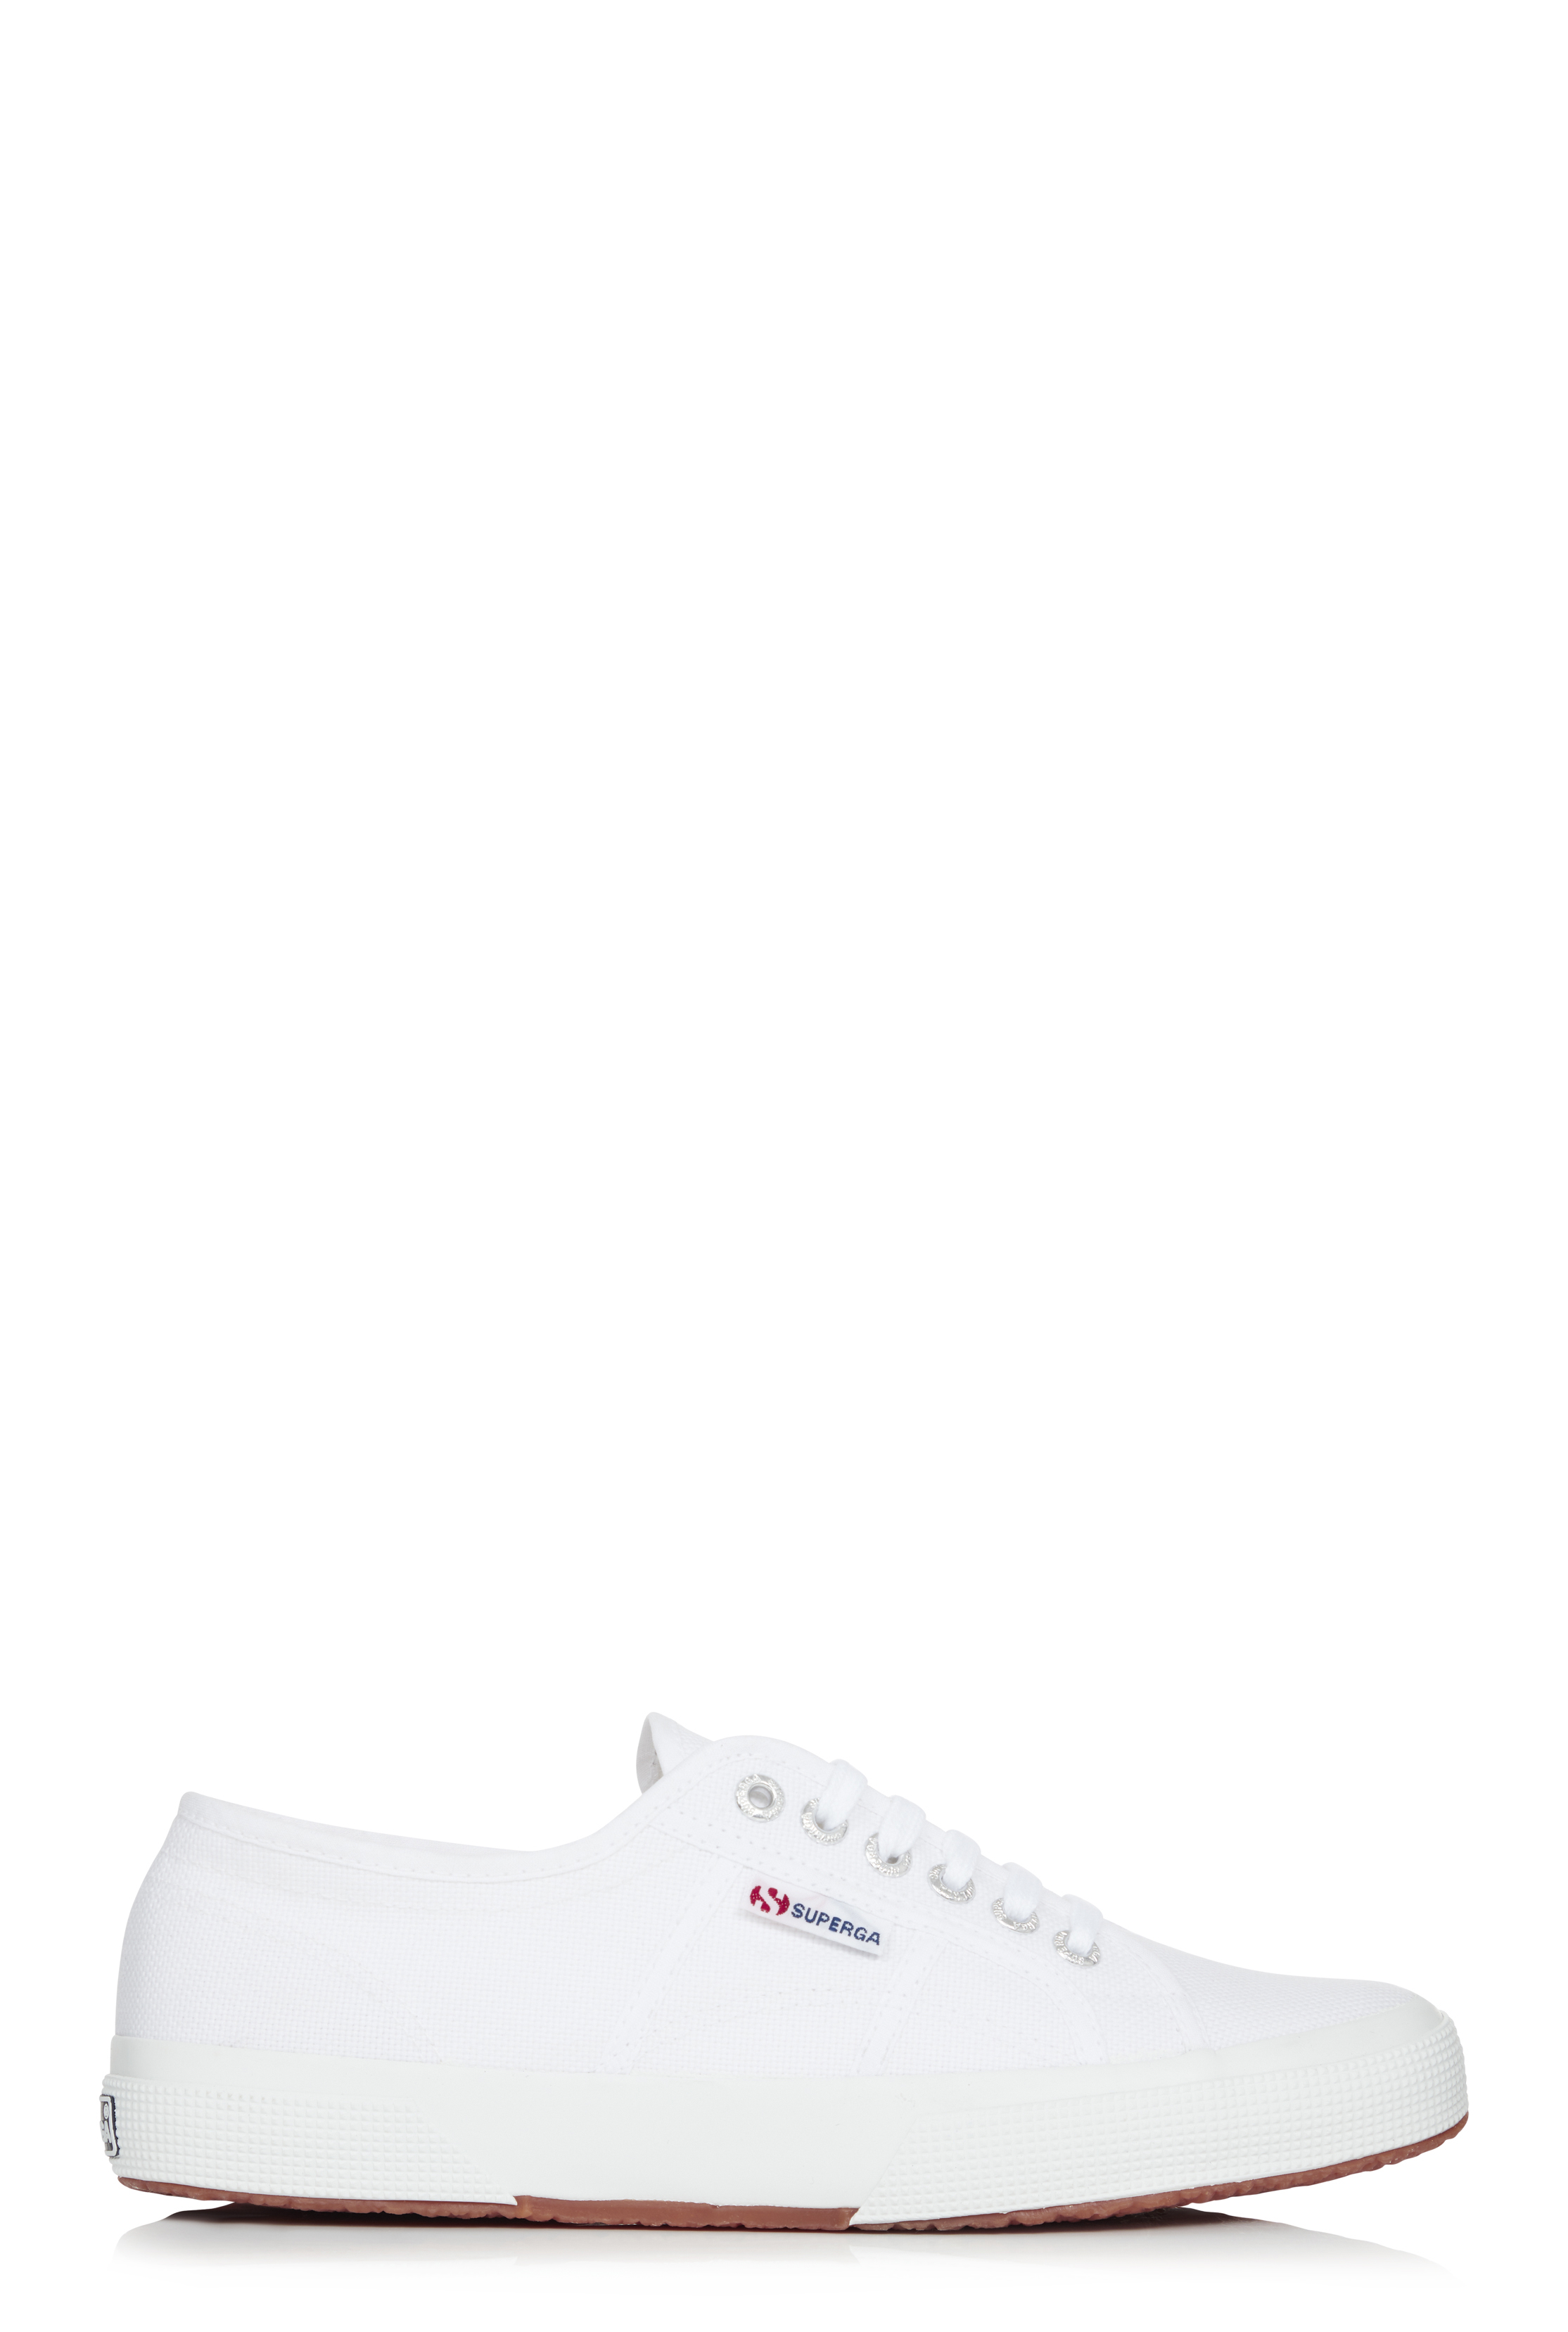 Superga White 2750 Cotu Trainers